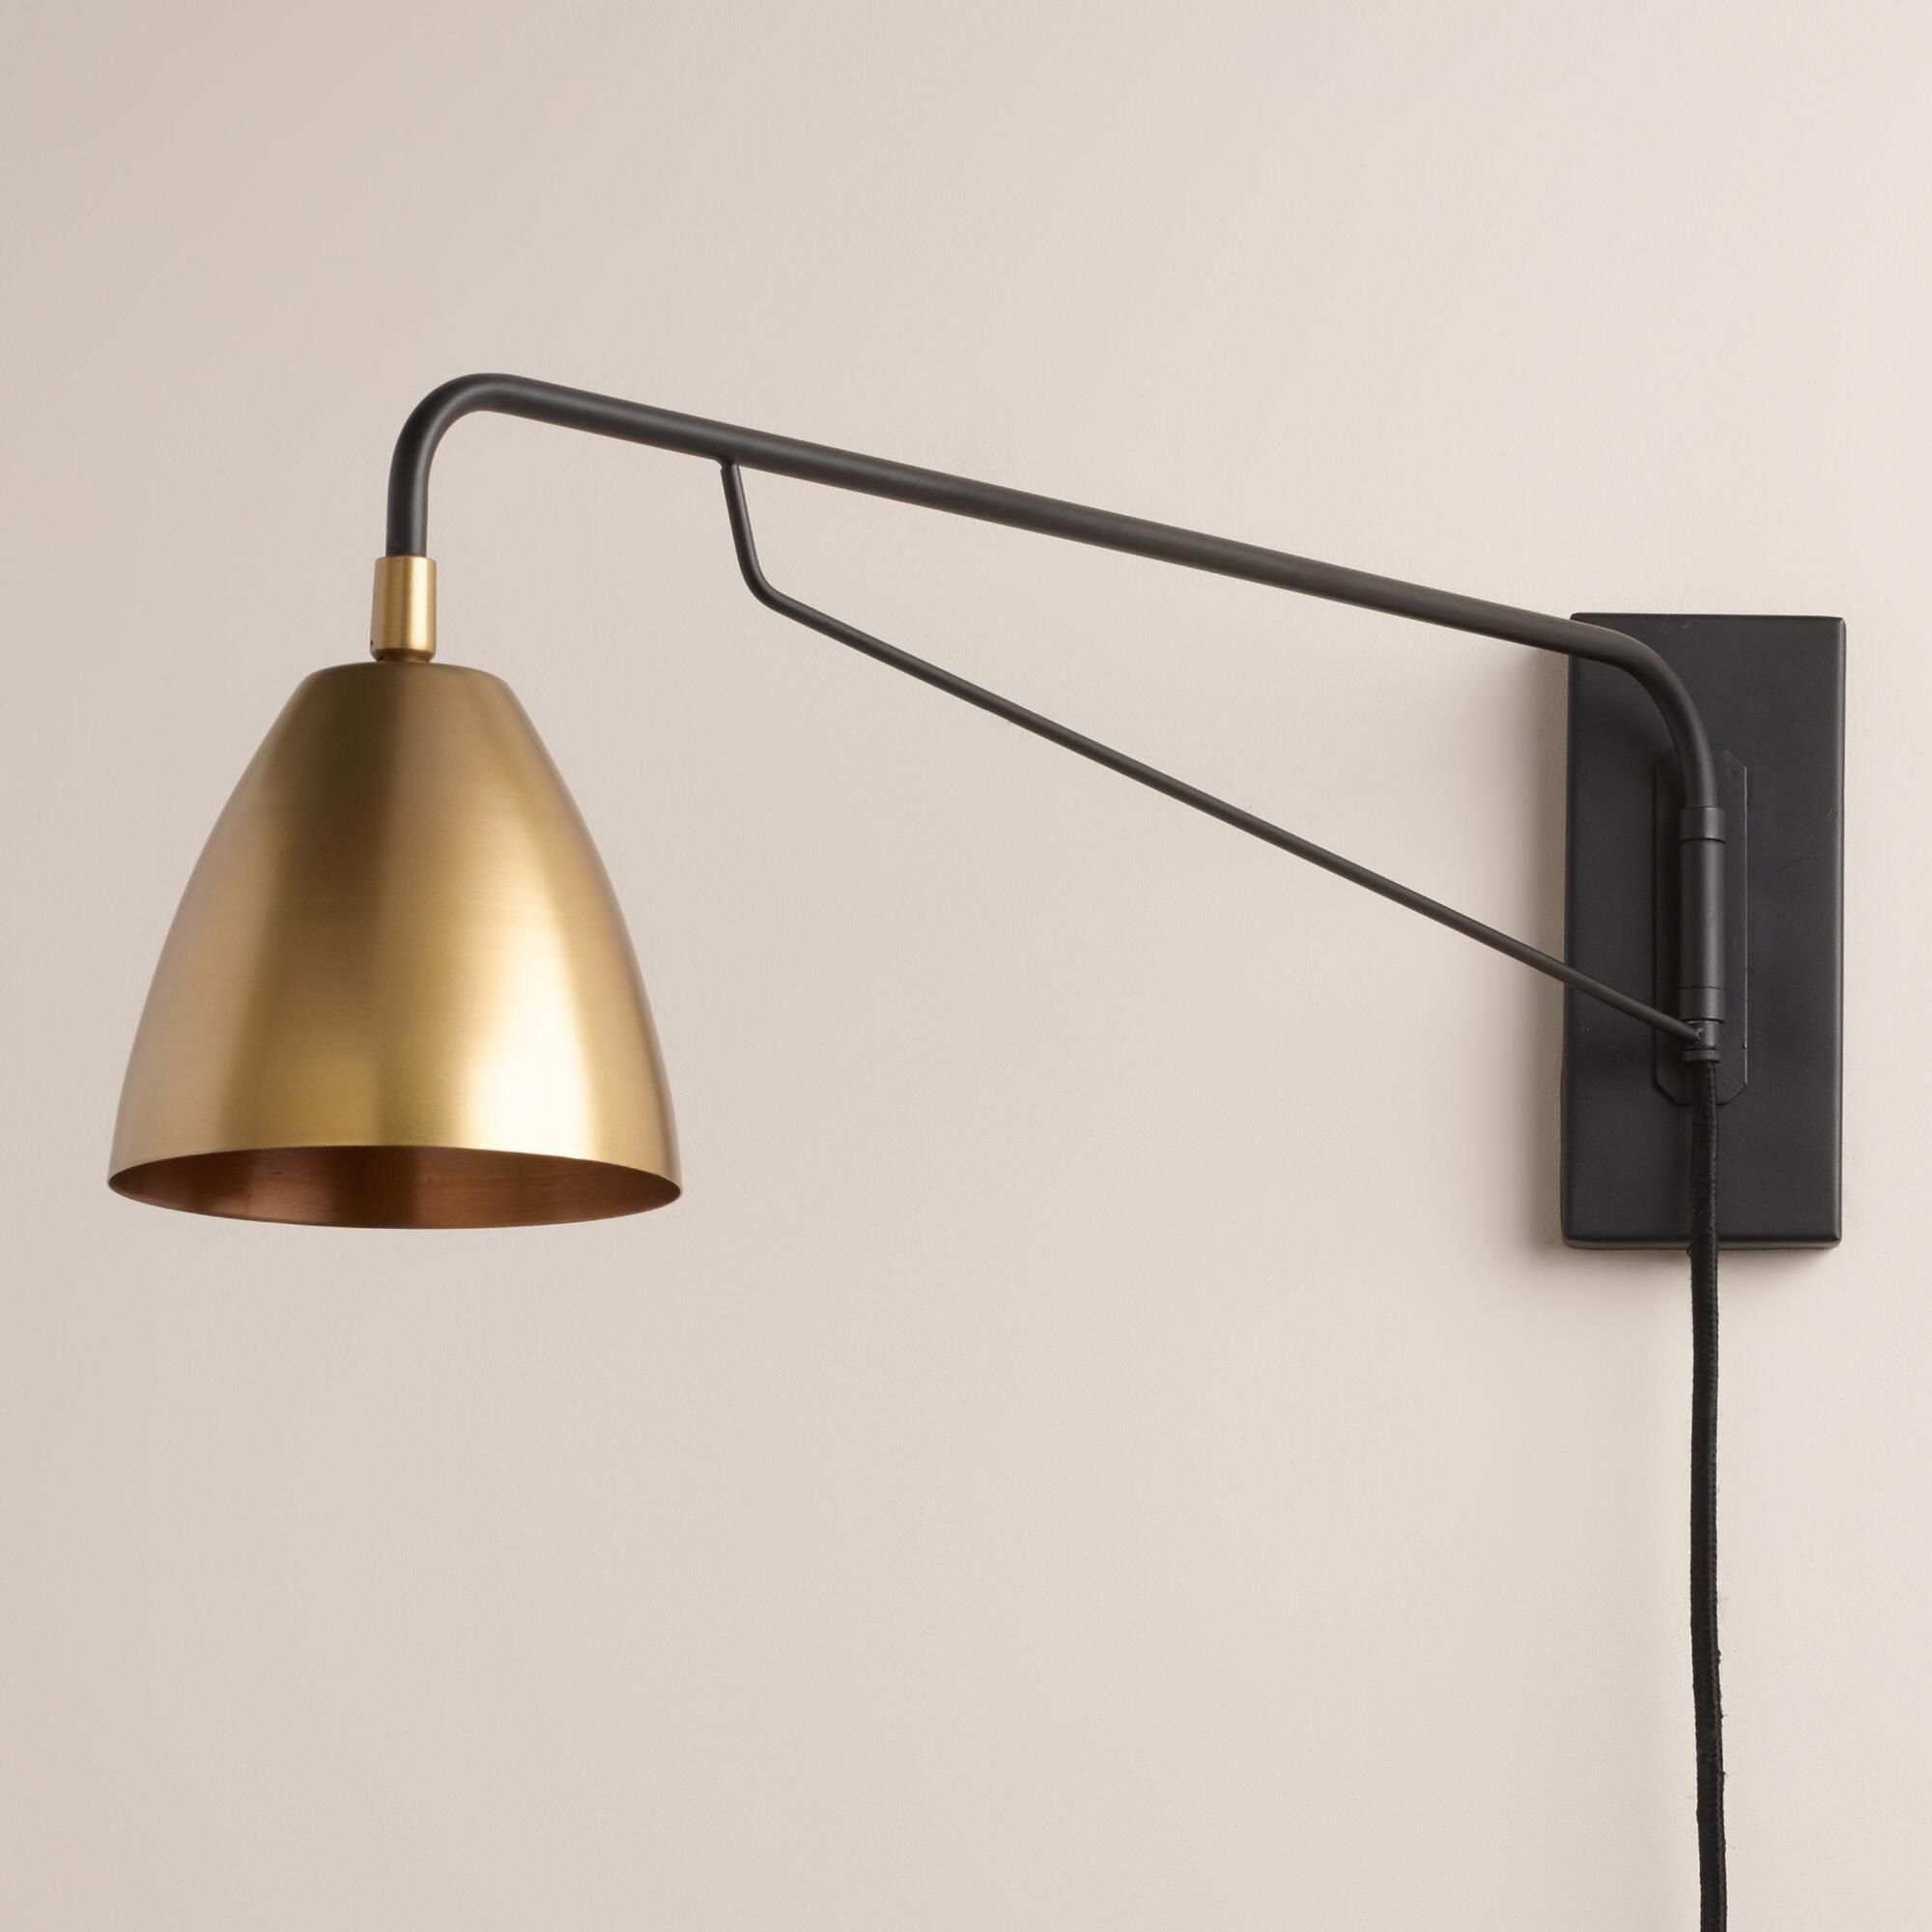 Contemporary Vintage Wall Lights : Brass Nook Pivoting Wall Sconce Mid century modern design, Lighting solutions and Antique brass